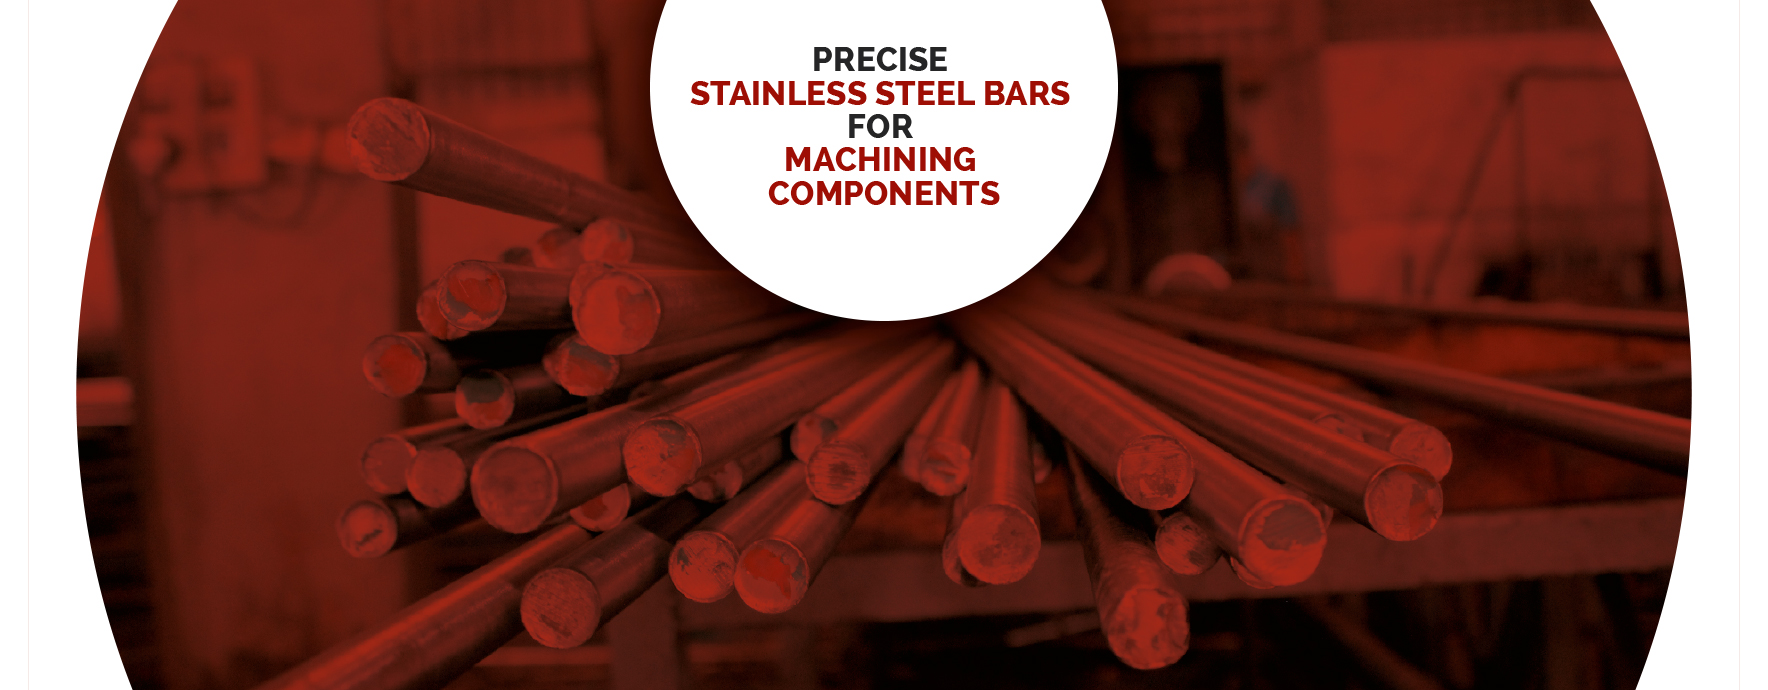 Precise Stainless steel bars for Machining Components Home page slide